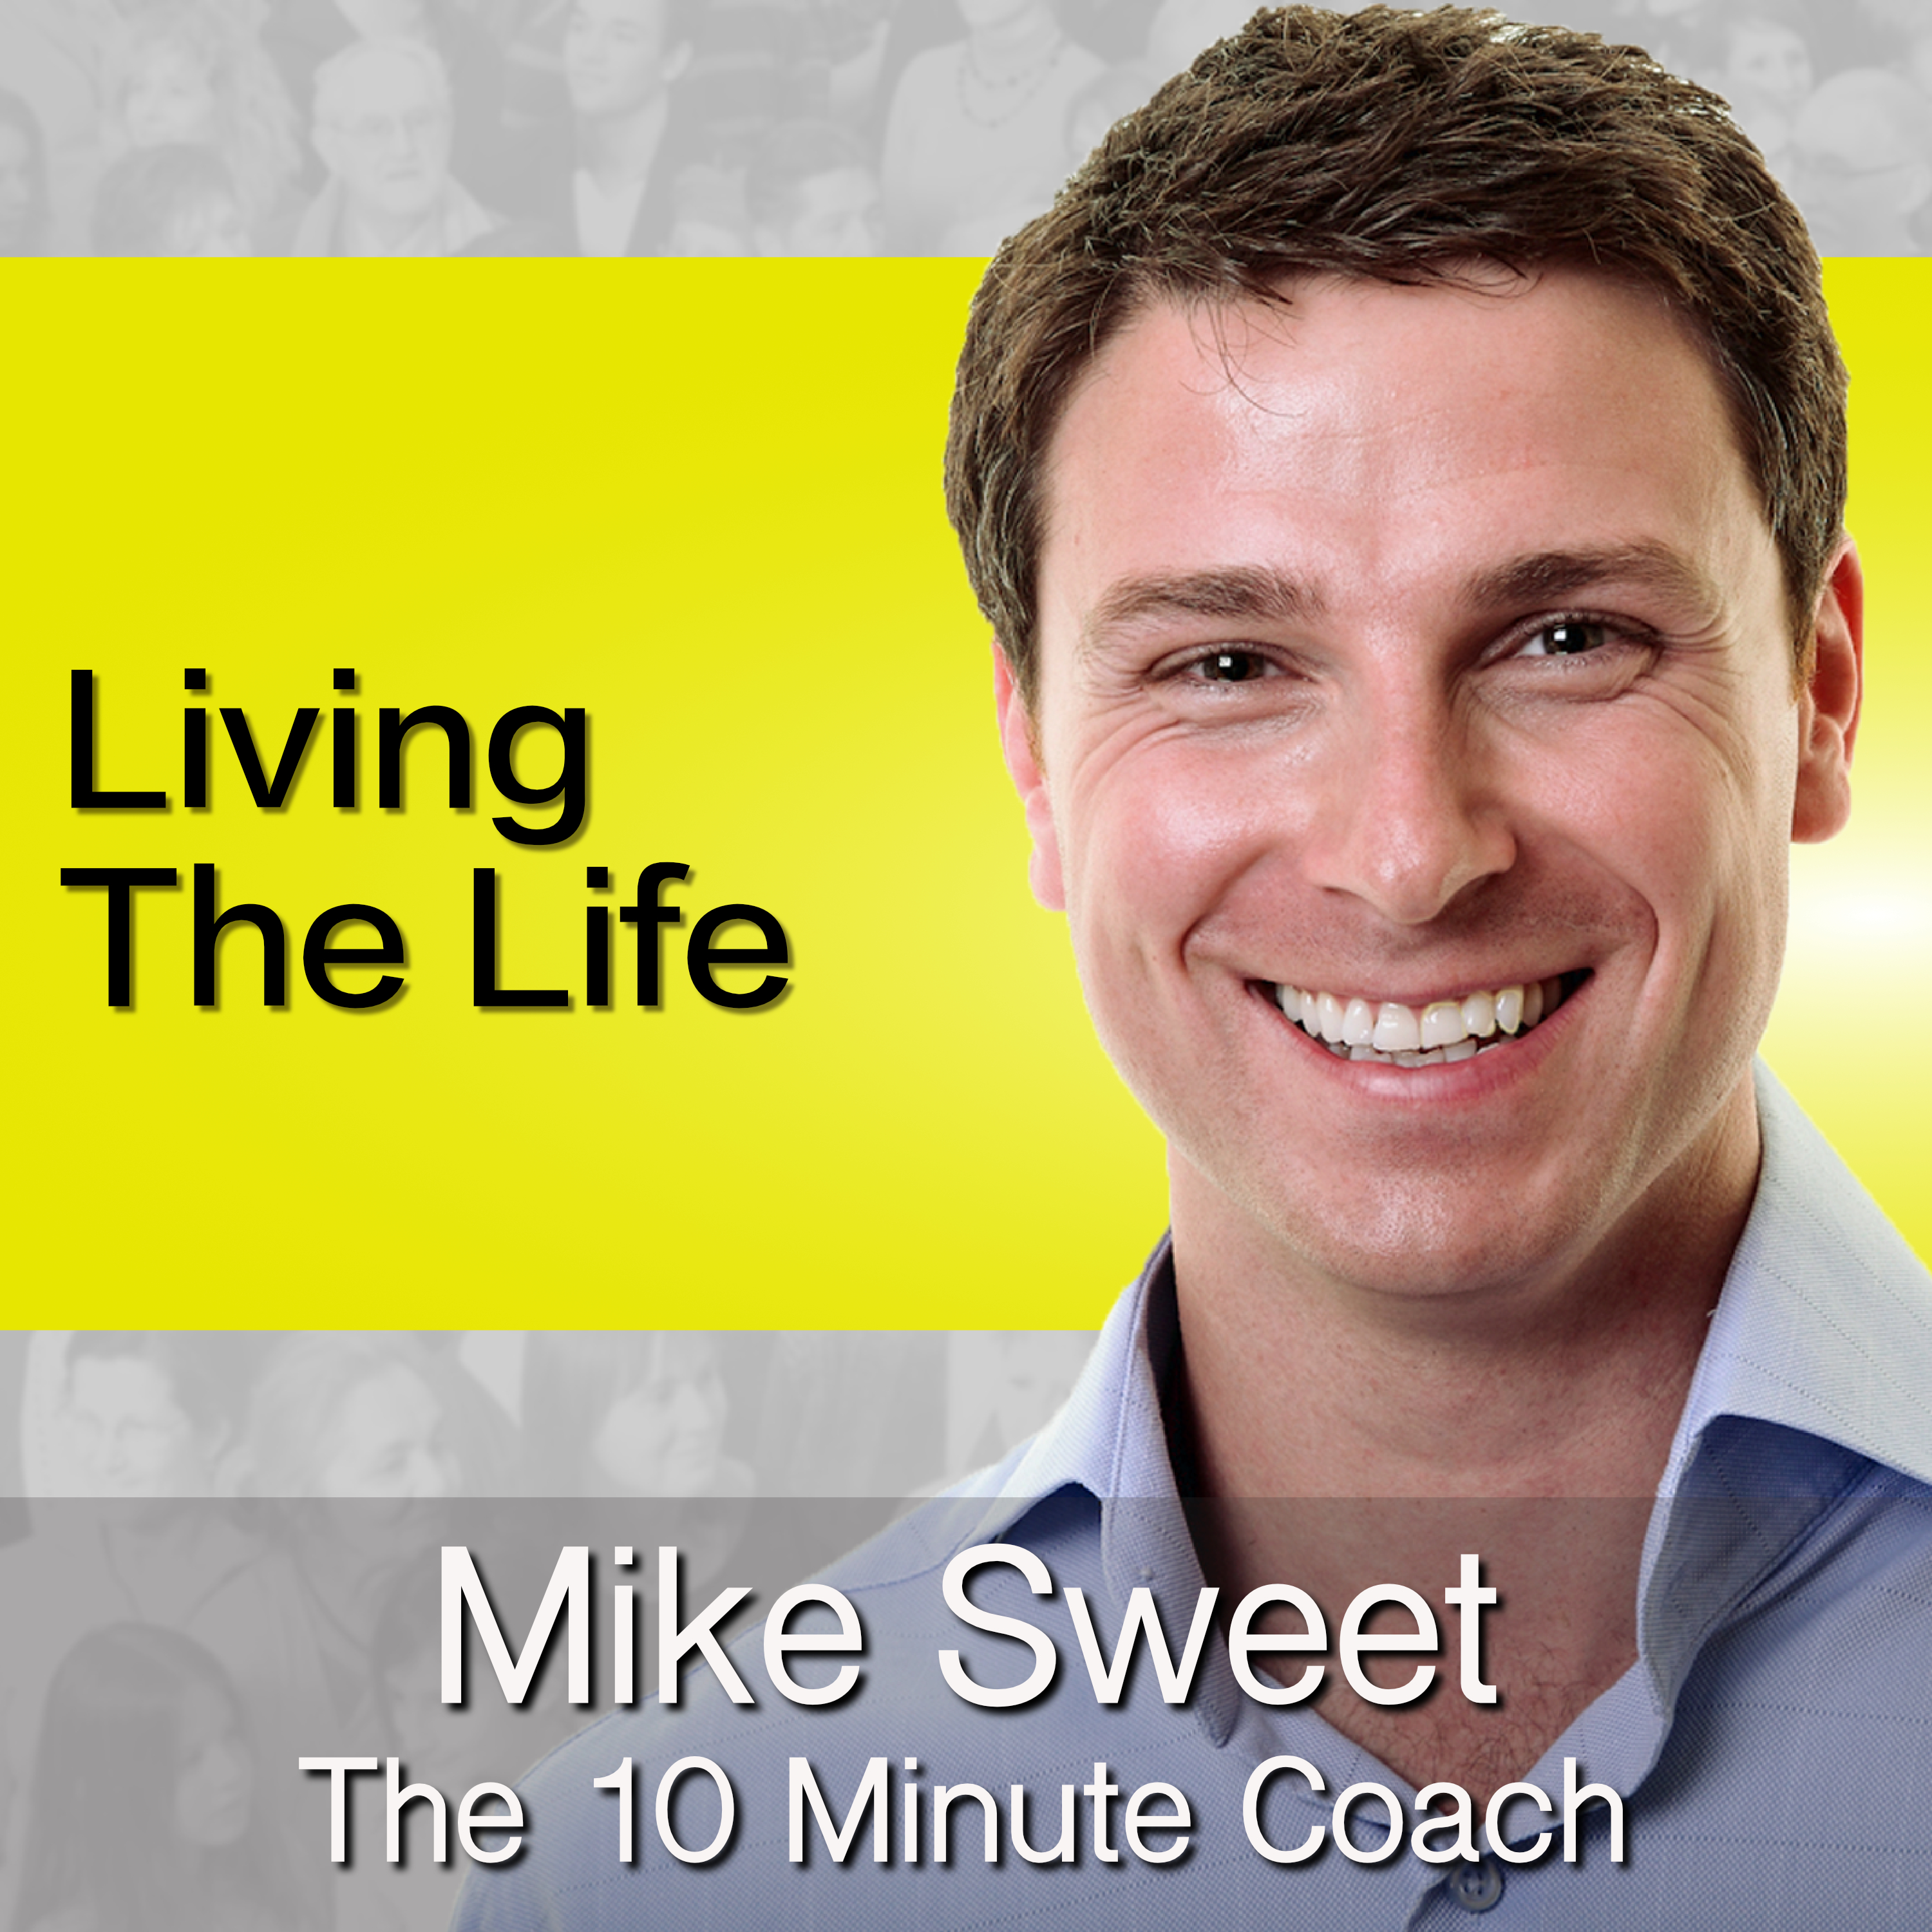 Living The Life - Mike Sweet - 10 Minute Coach - Happy Life Principles